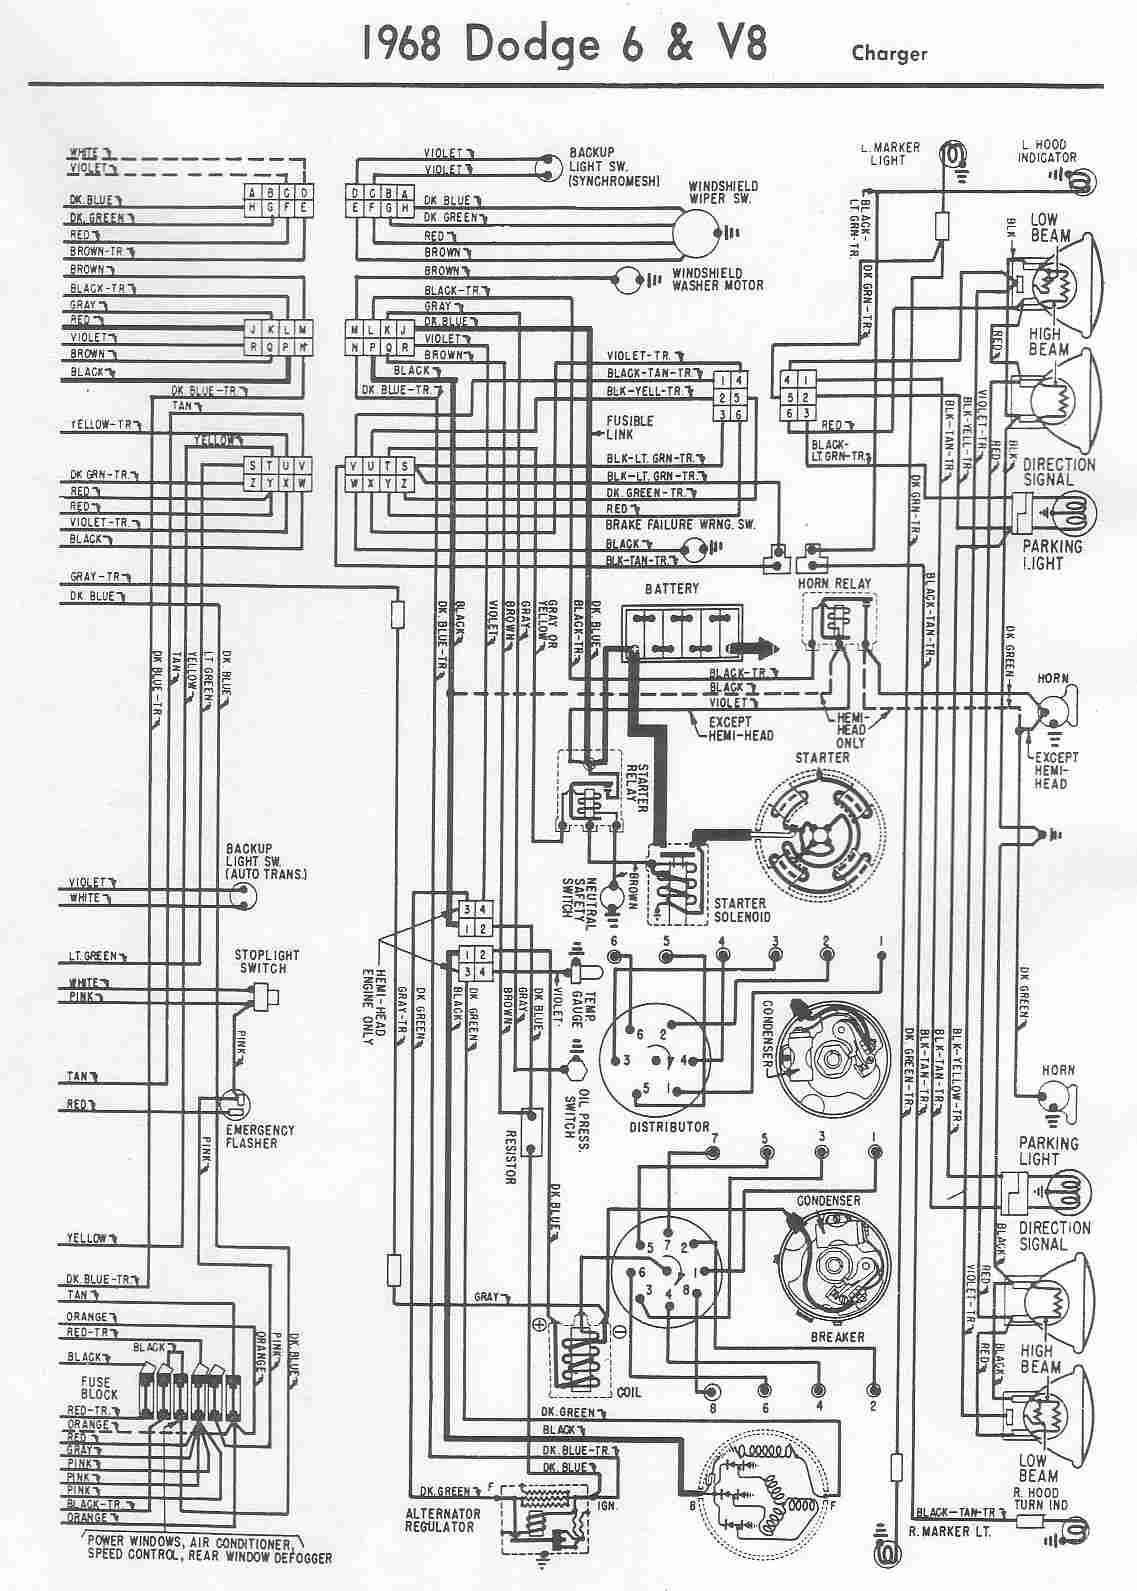 charger electrical wiring diagram of 1968 dodge 6 and v8?t=1508404771 dodge car manuals, wiring diagrams pdf & fault codes Pioneer Car Stereo Wiring Diagram at edmiracle.co